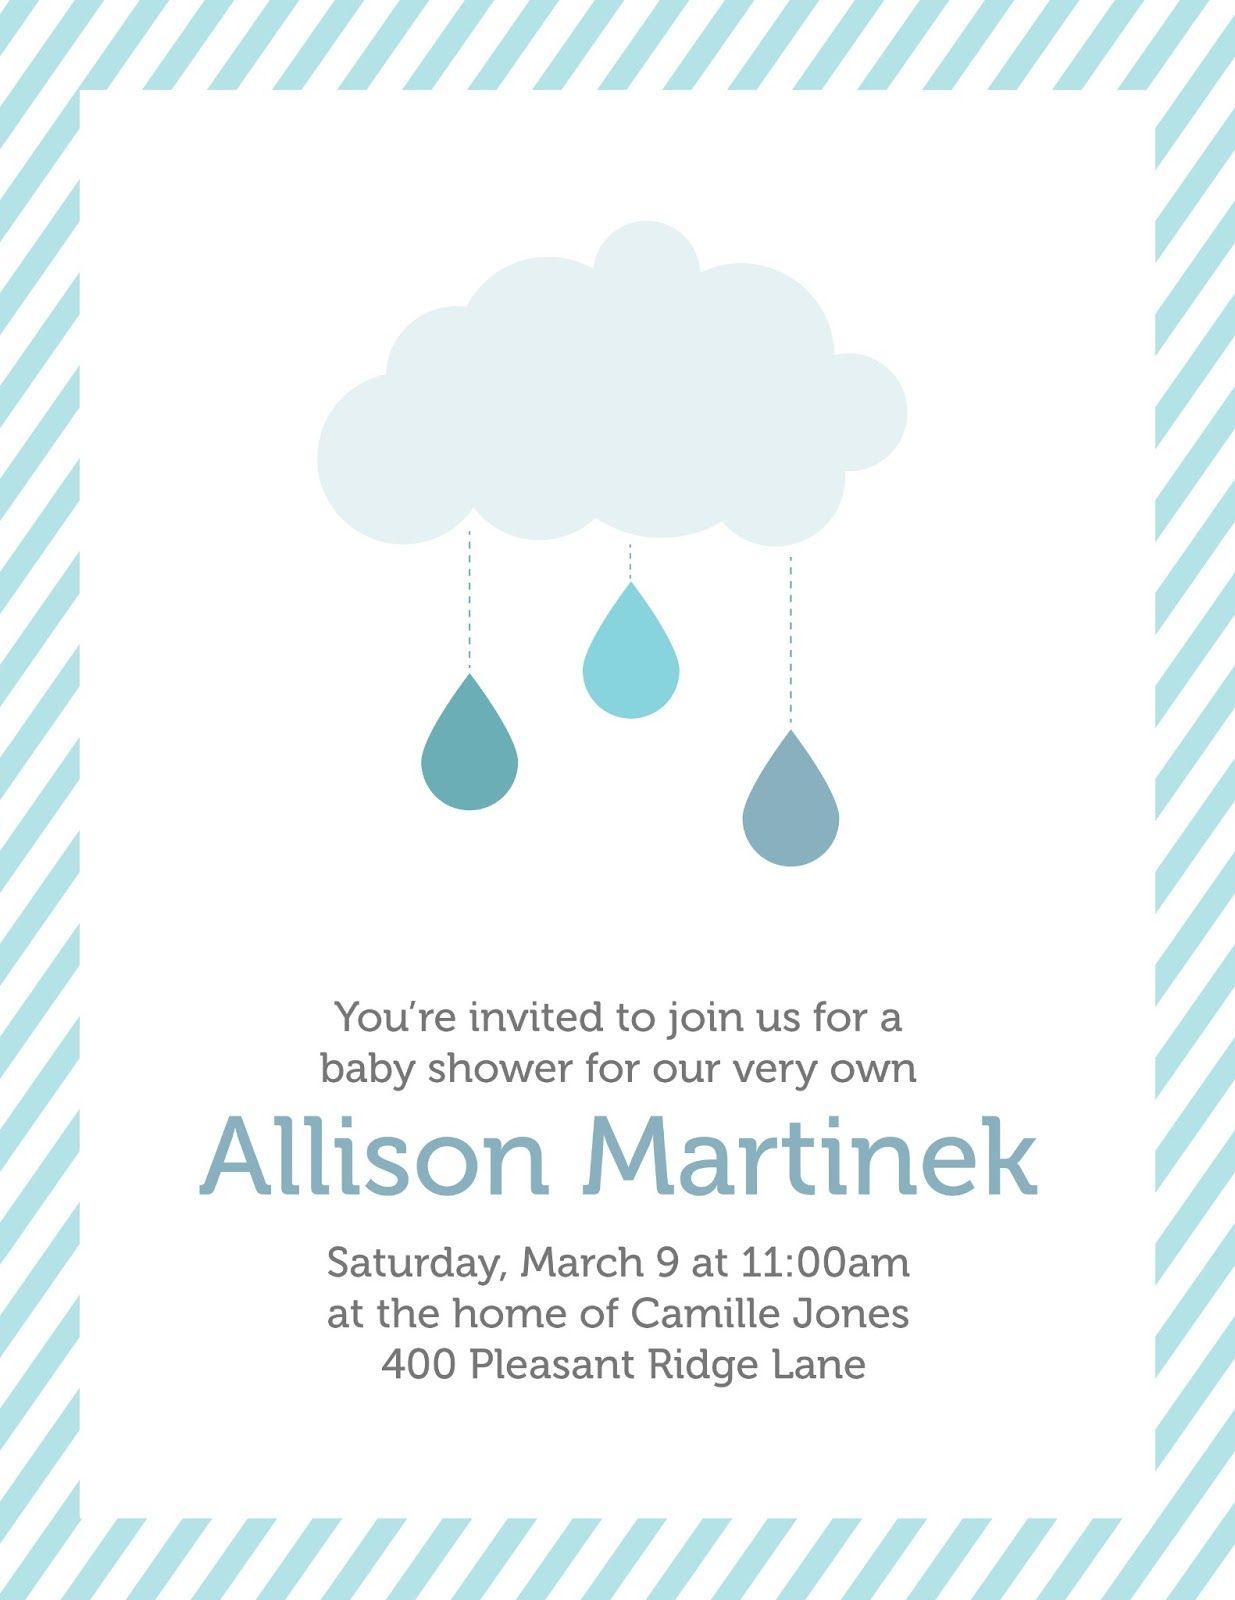 27bcf30e0a1c5f6d31ca5def525bd4c9 baby shower invitations cloud theme cloud decoration with,How To Invite People To A Baby Shower